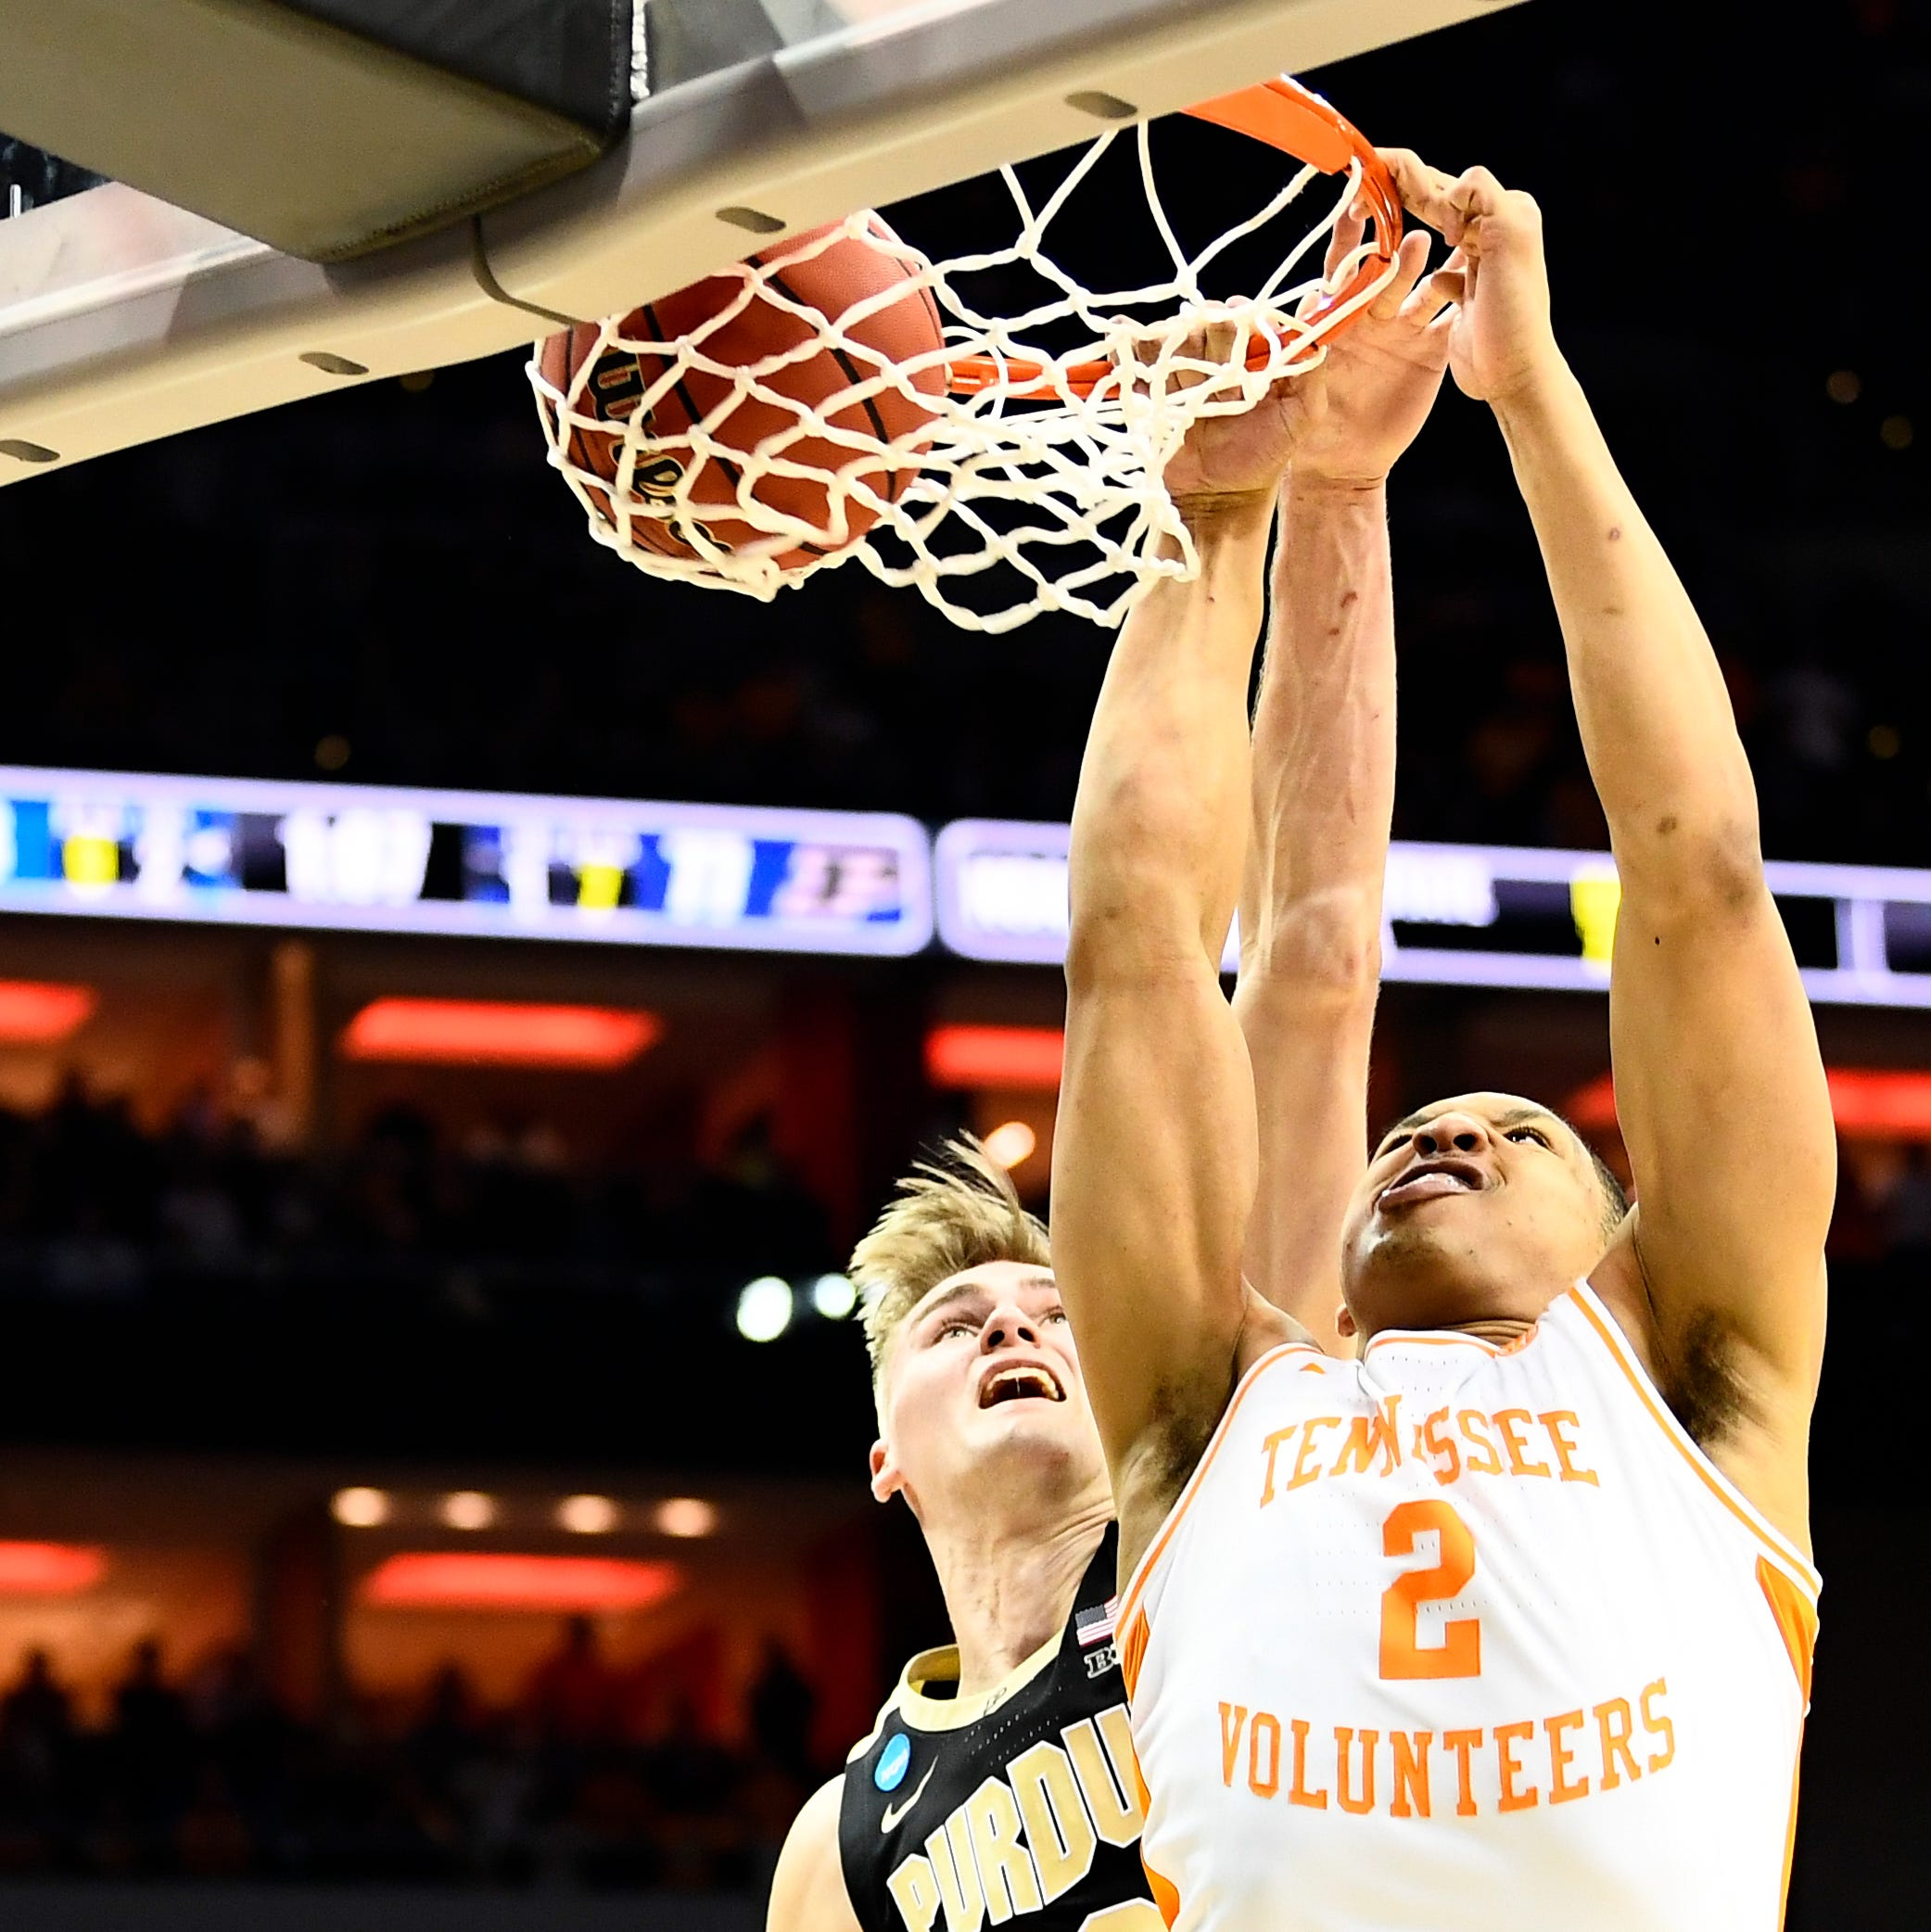 Tennessee Vols basketball is built to last, but maintaining this level won't be easy